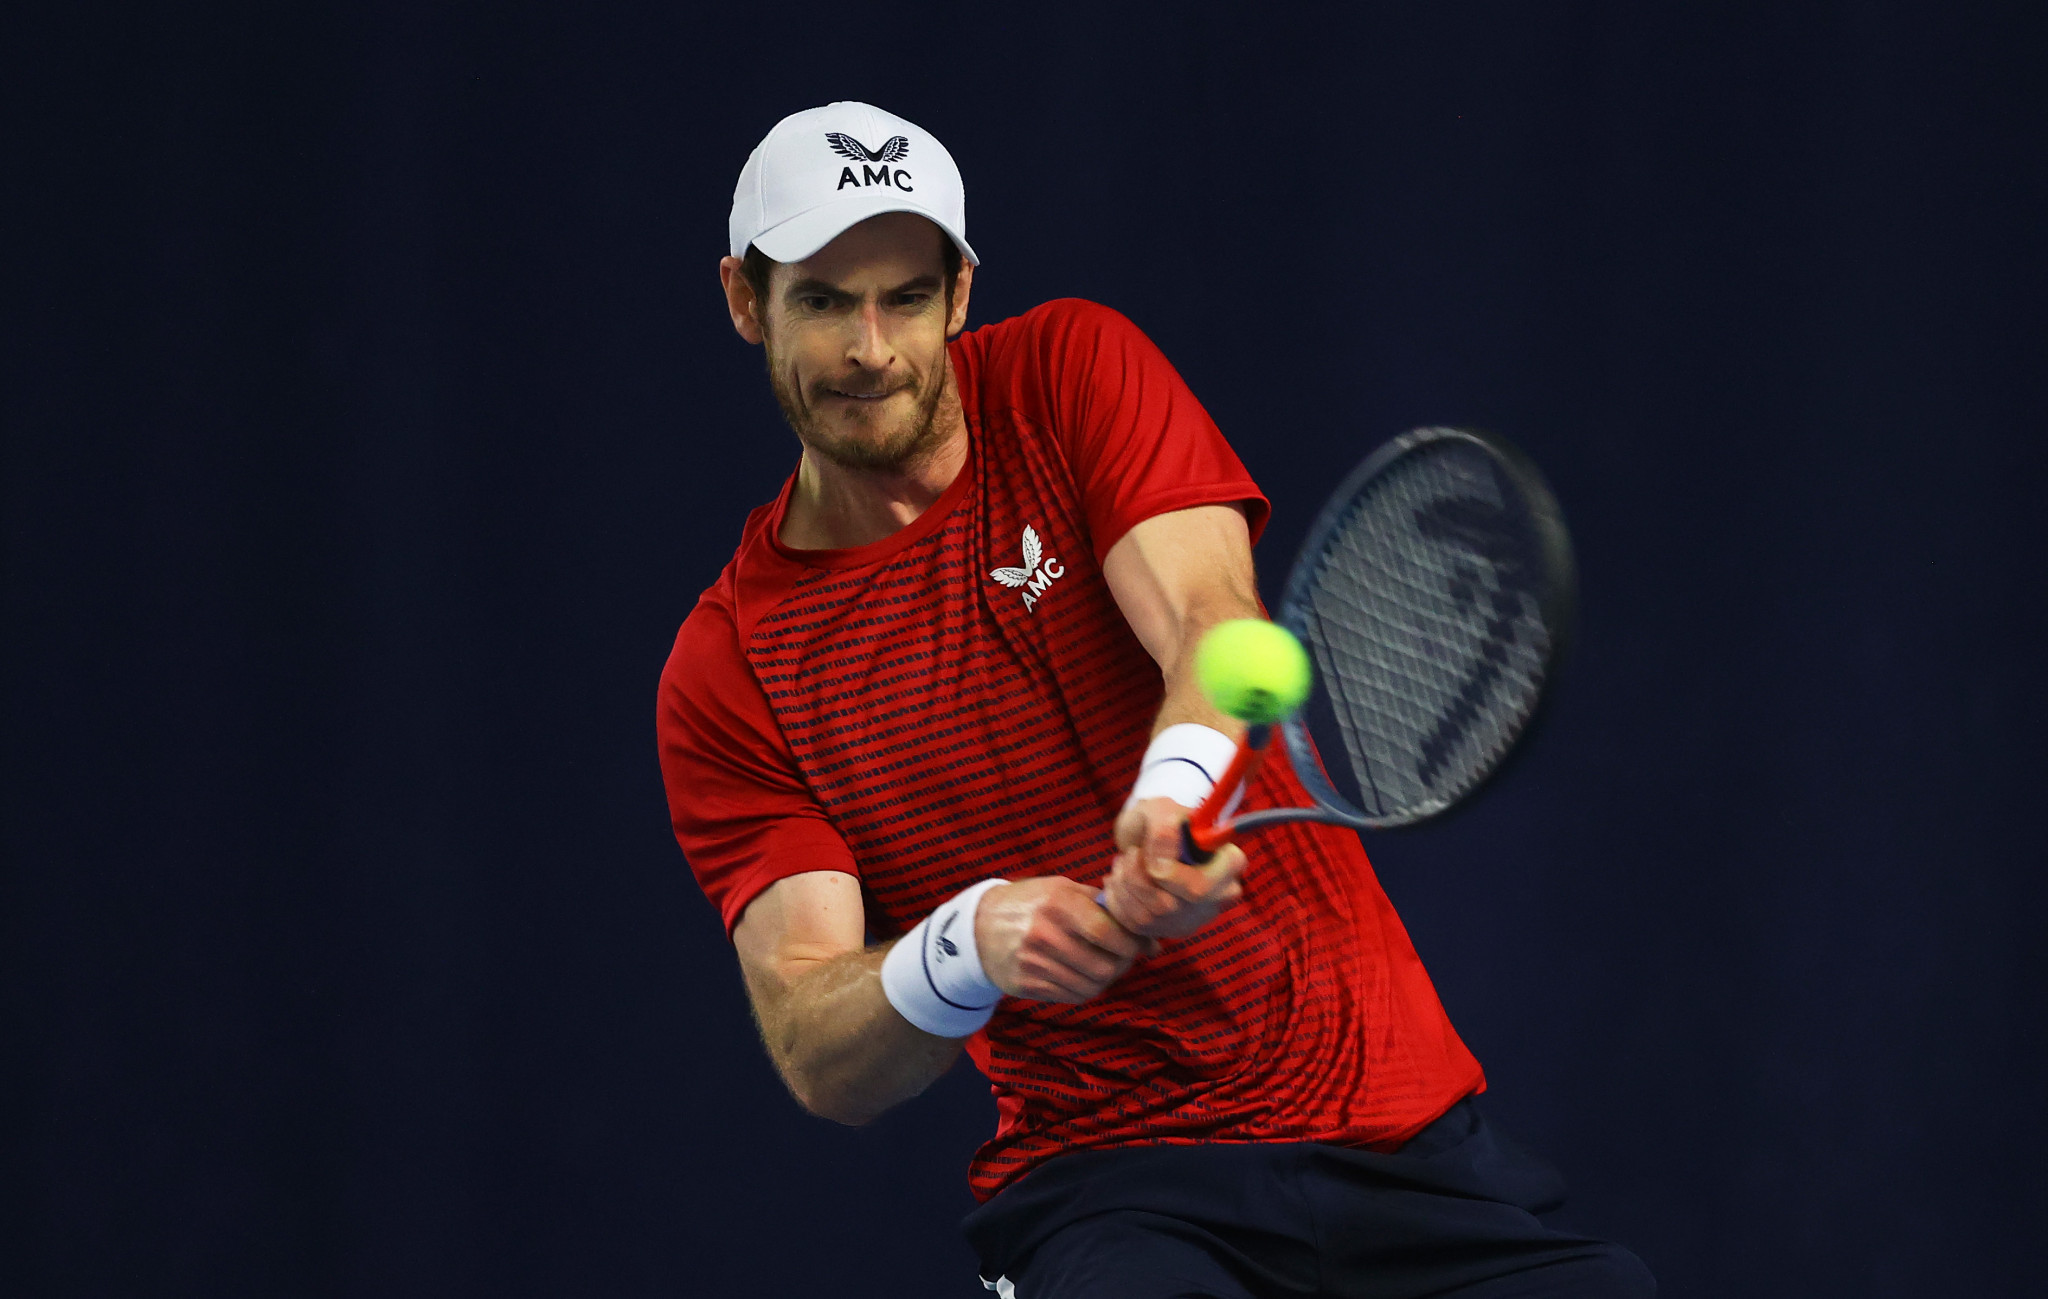 Sir Andy Murray tested positive for coronavirus earlier this month ©Getty Images